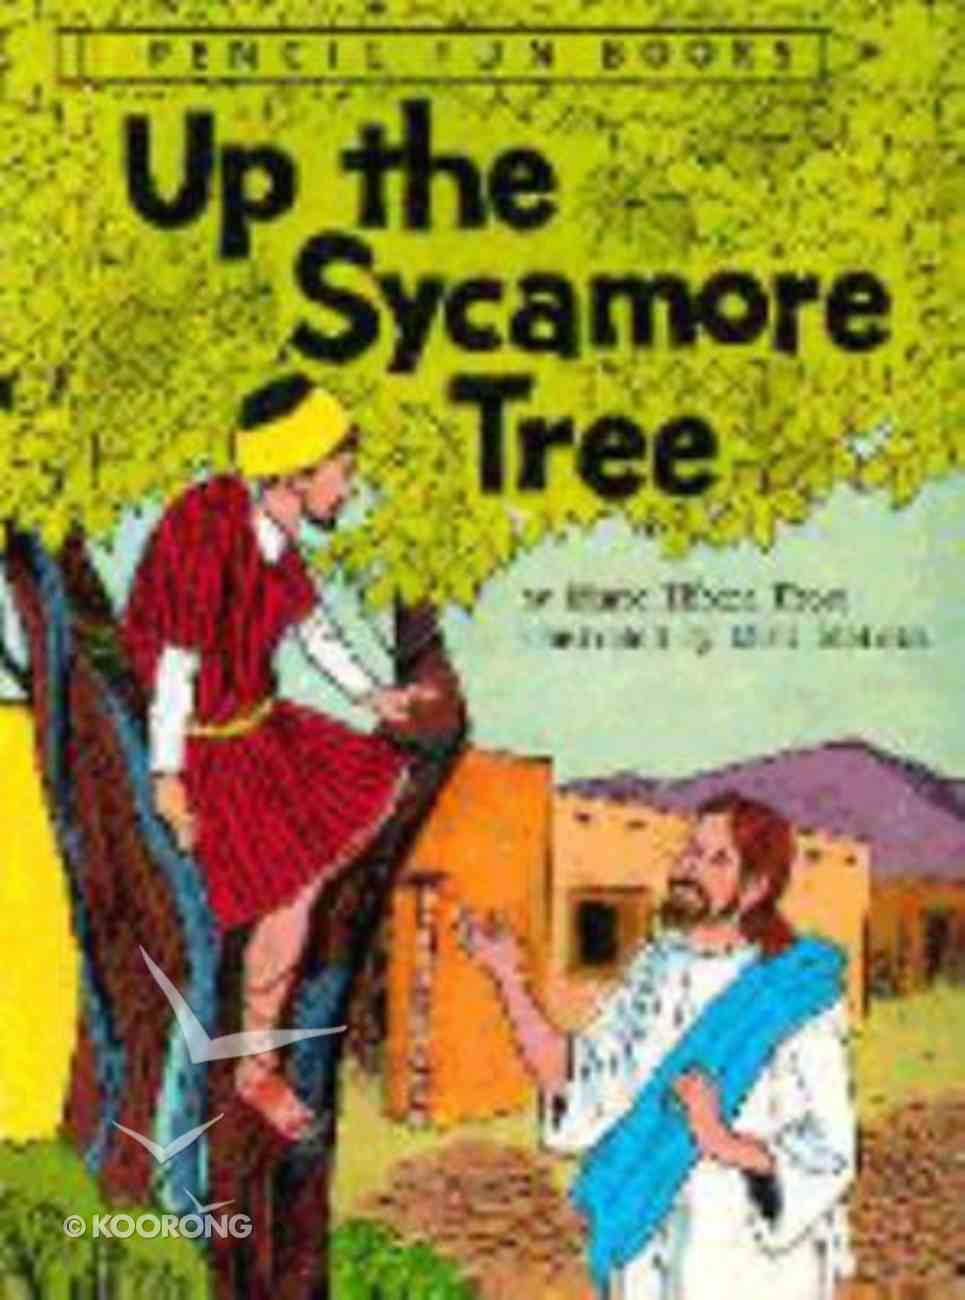 Up a Sycamore Tree (Pencil Fun Books Series) Paperback